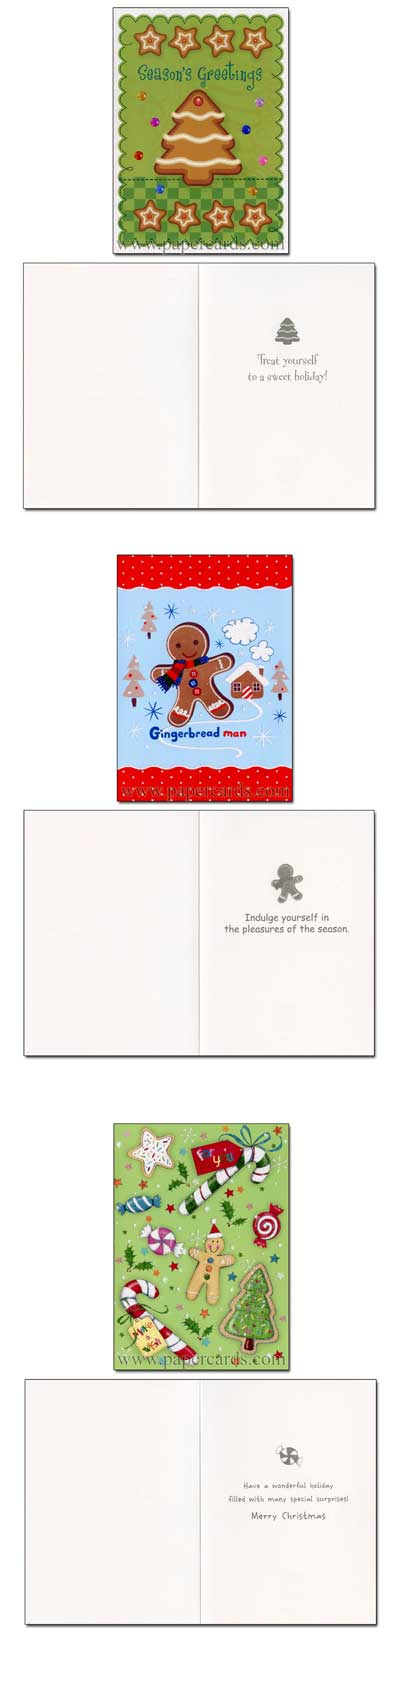 Bakery Keepsake Assortment (21 cards & 21 envelopes) Paper Magic Group Boxed Christmas Cards - FRONT: various  INSIDE: various